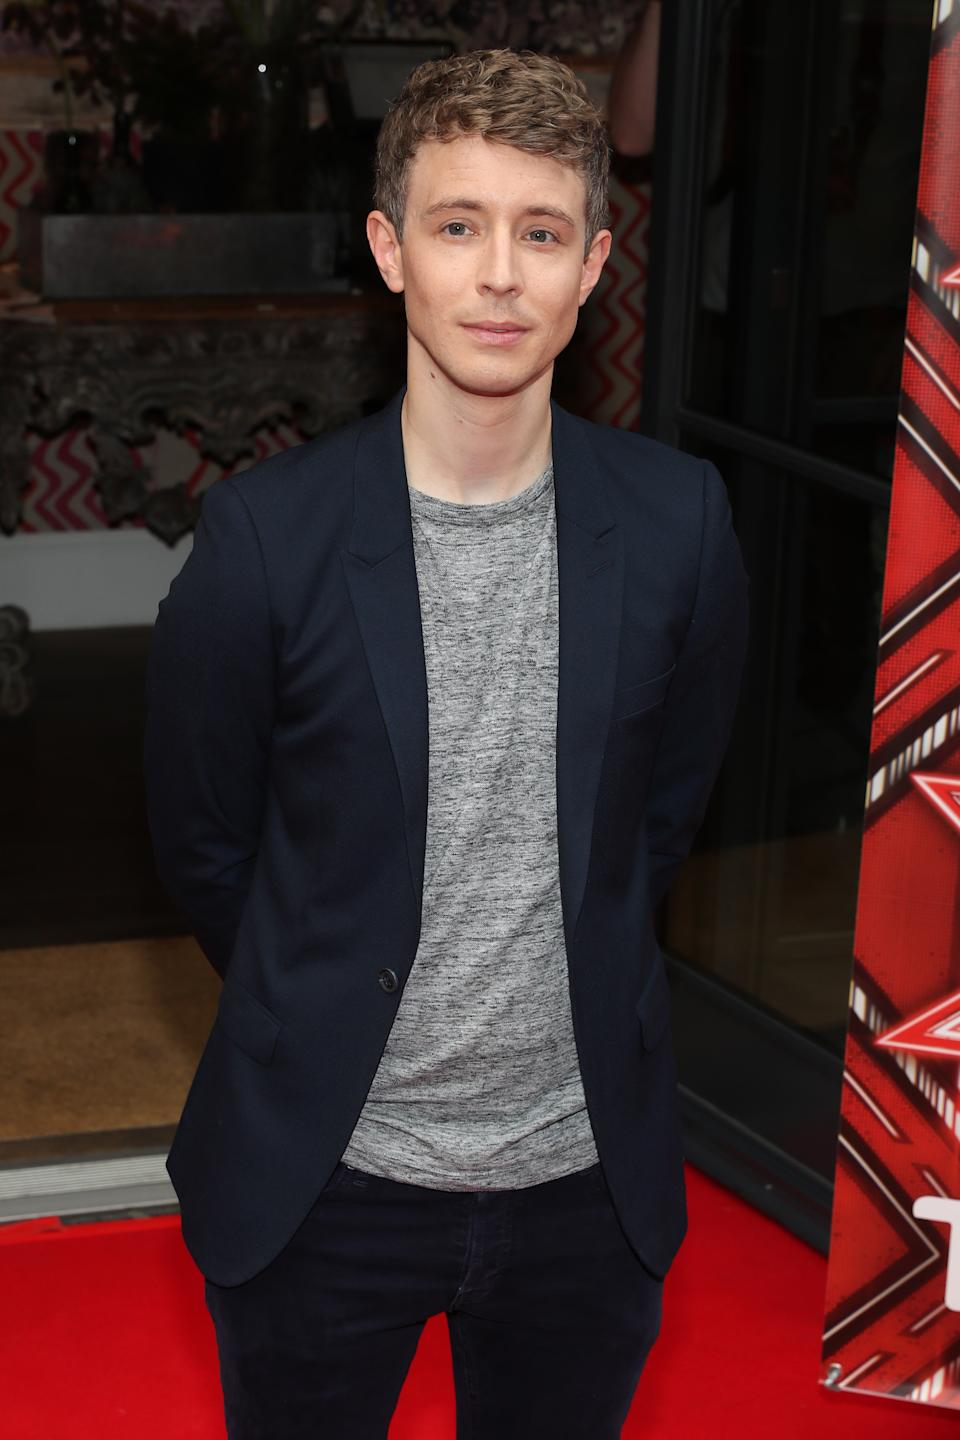 LONDON, UNITED KINGDOM - AUGUST 25: Matt Edmondson attends the Launch of the X Factor 2016 at the Ham Yard Hotel on August 25, 2016 in London, England. (Photo by Alex B. Huckle/FilmMagic)